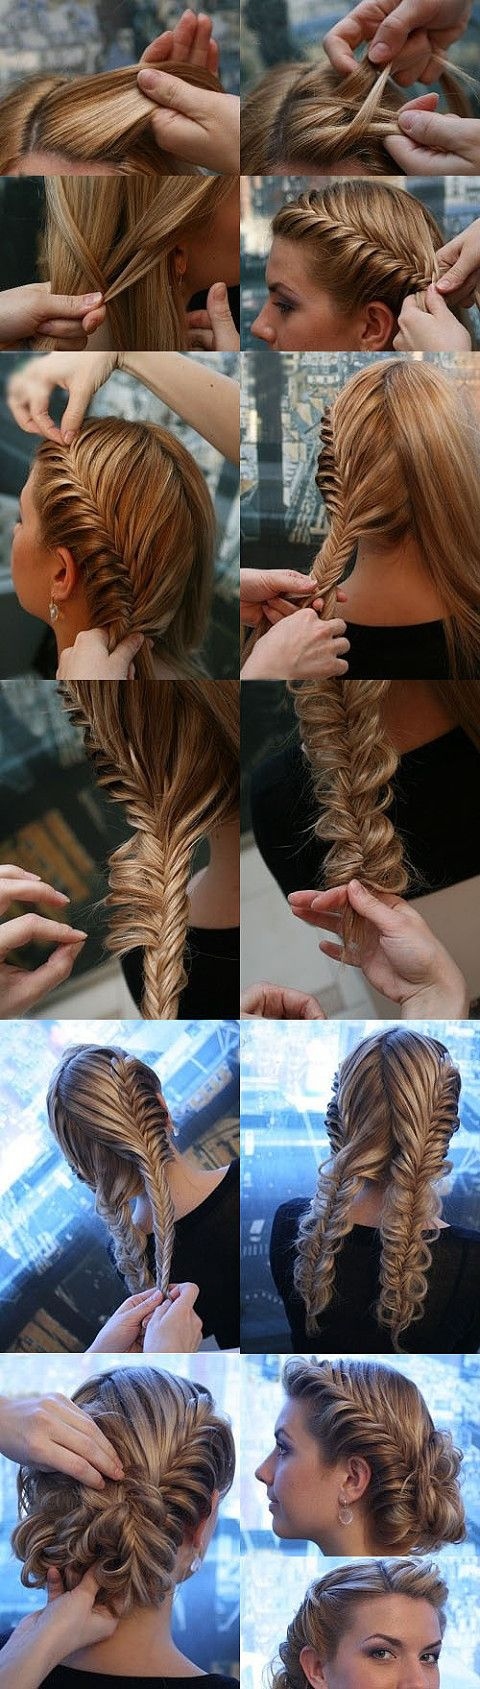 someone teach me to do this!